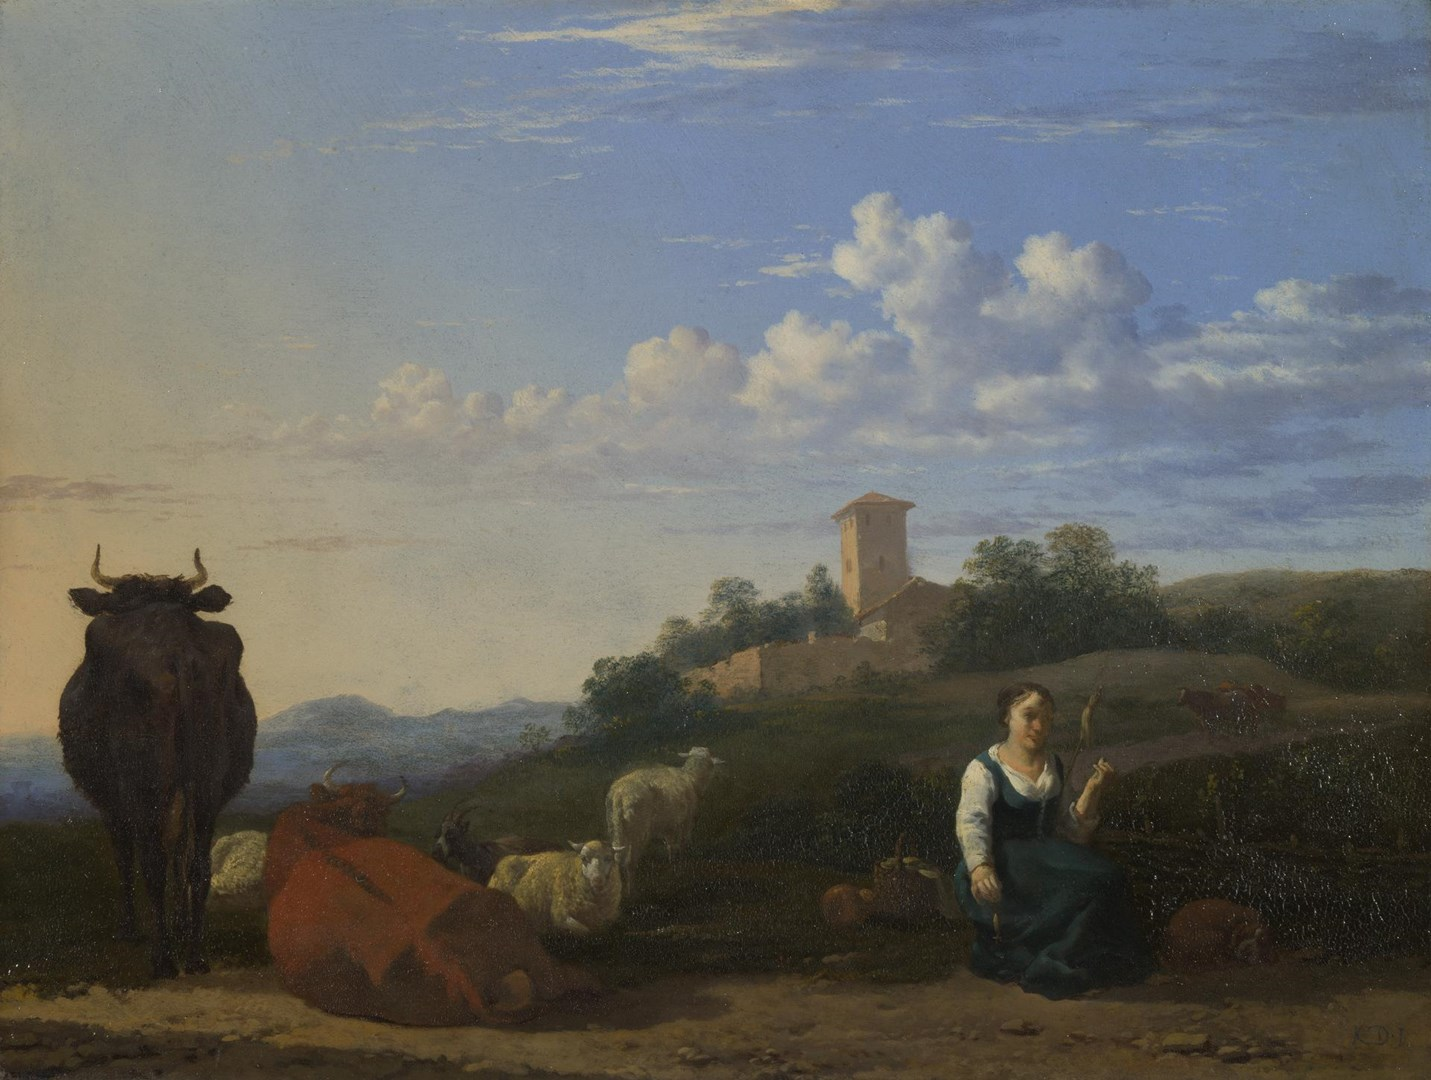 A Woman with Cattle and Sheep in an Italian Landscape by Karel Dujardin